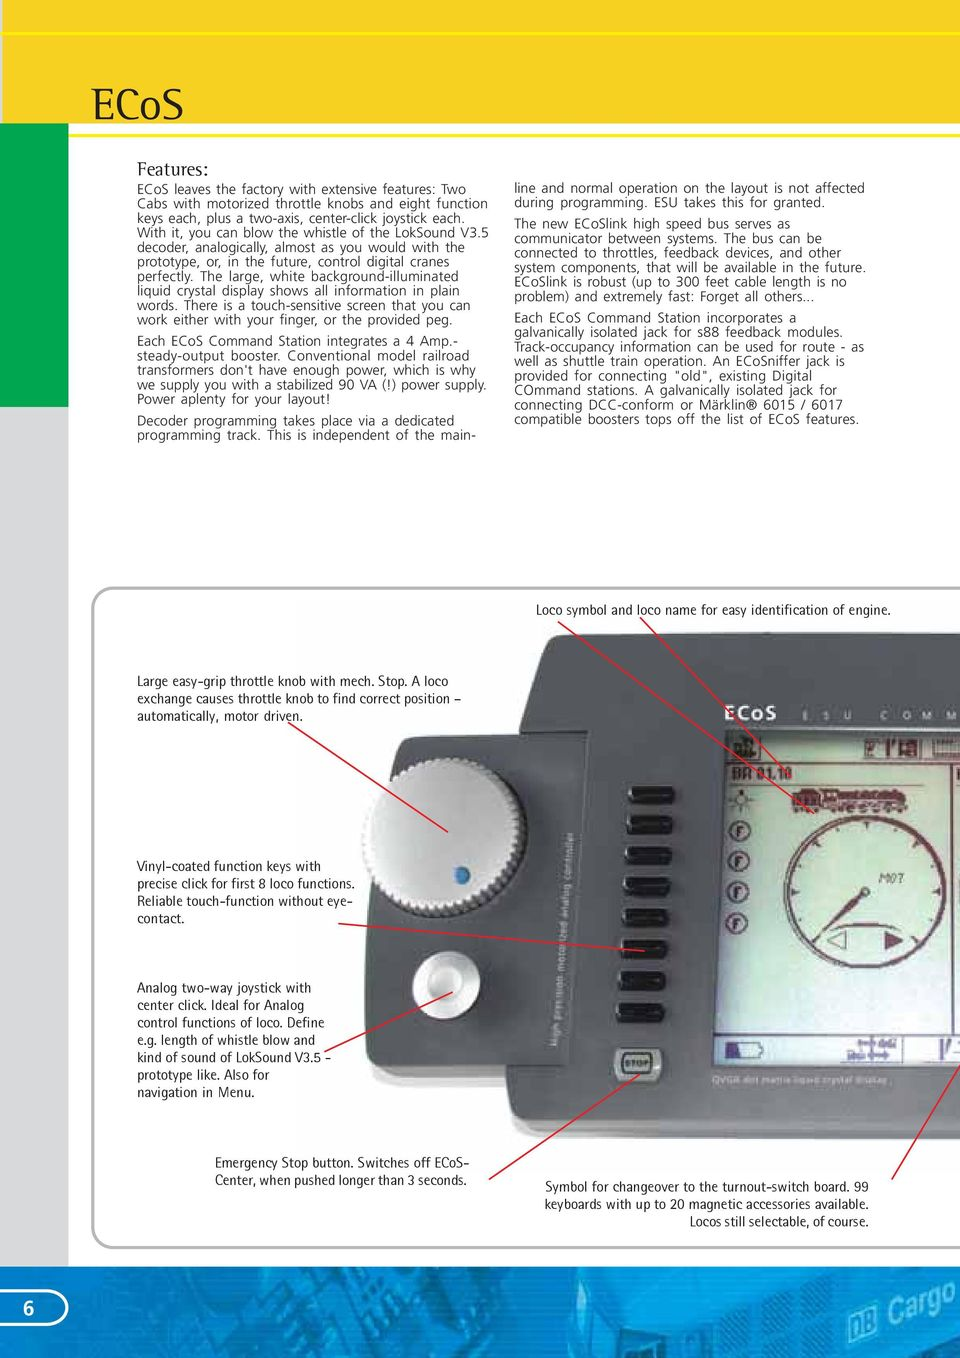 Esu Its Mir Gmbh Halabas Pdf Picaxe Model Railroad Speed Controller The Large White Background Illuminated Liquid Crystal Display Shows All Information In Plain Words